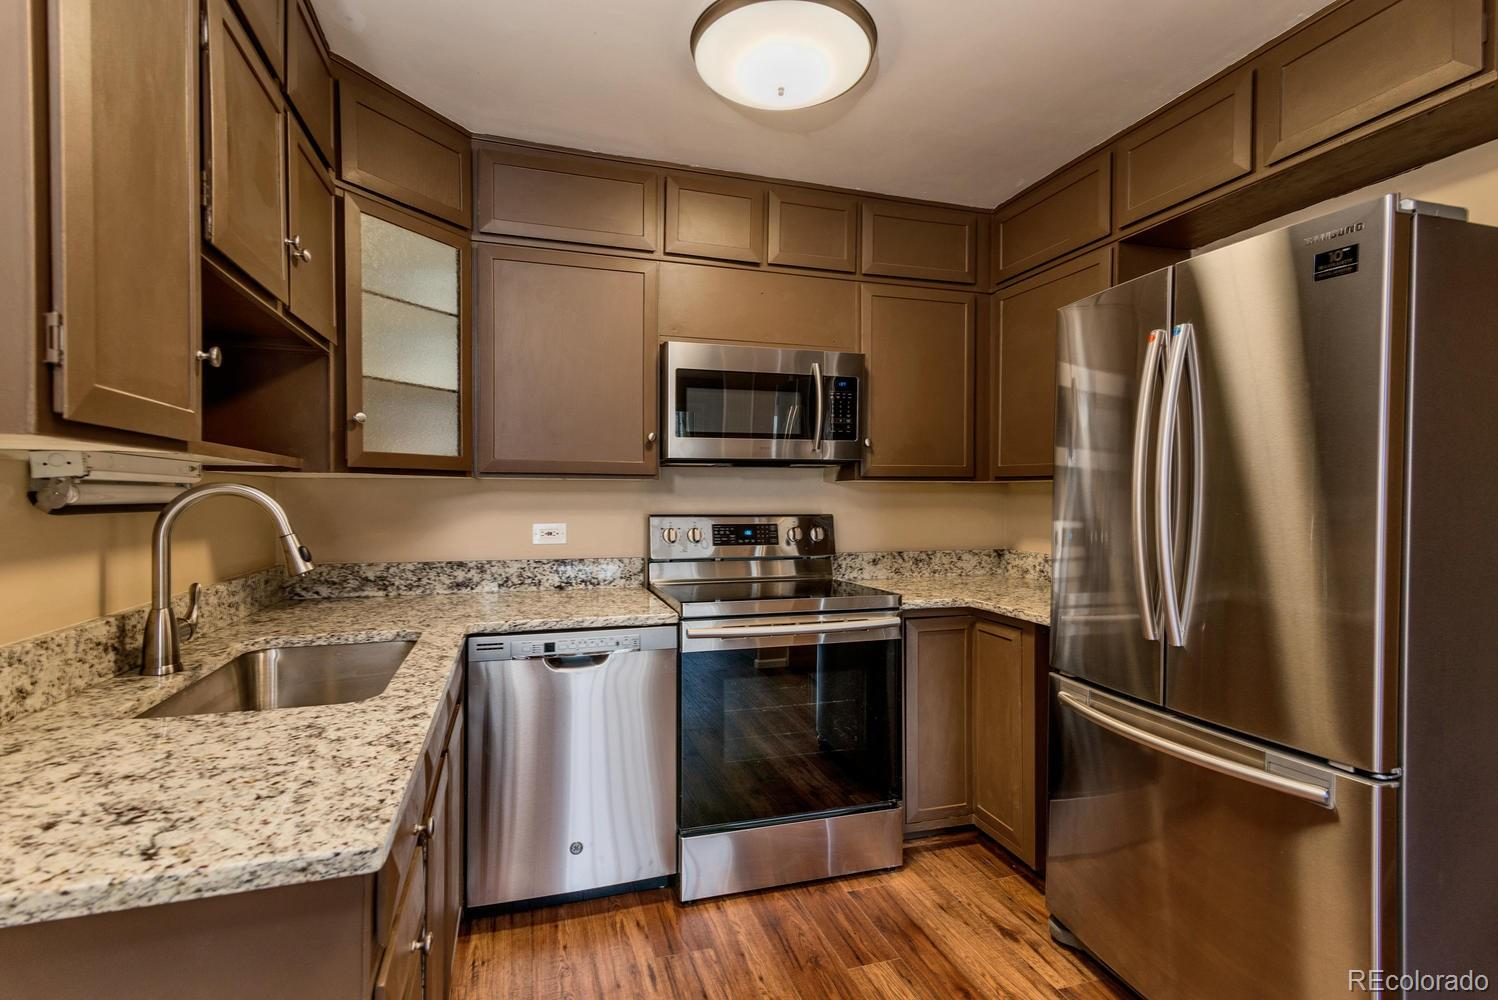 Spacious and updated, this condo is a must see!! Move right in and enjoy this 1380 sf condo in much desired and beautifully maintained Windsor Gardens !!  This condo features 2 bedrooms, 2 bathrooms, plus a bonus den! 2 car underground parking spaces included!!! Great location steps to clubhouse and all the amenities this community has to offer. Kitchen features granite slab countertops, new stainless steel appliances included! Bathrooms with new sinks, faucets and granite slab counters. Laminate wood floors throughout main area- kitchen, entry, and den. Newer neutral paint tones throughout. New Carpet in bedrooms! Master features en-suite 3/4 bathroom, and a large walk-in closet. 3 wall a/c units. Lanai features water resistant laminate flooring, glass/screen enclosure, and 2 vinyl slider doors. Bonus storage room on same floor. Colorado's largest active adult living community, age 55+. FHA/VA approved. HOA Dues include annual property taxes! And also heat, water, sewer, trash, 24-hour patrolling community responders, club house w/indoor & outdoor pool, hot tub, sauna, activities...9 hole par 3 golf course open to the public.